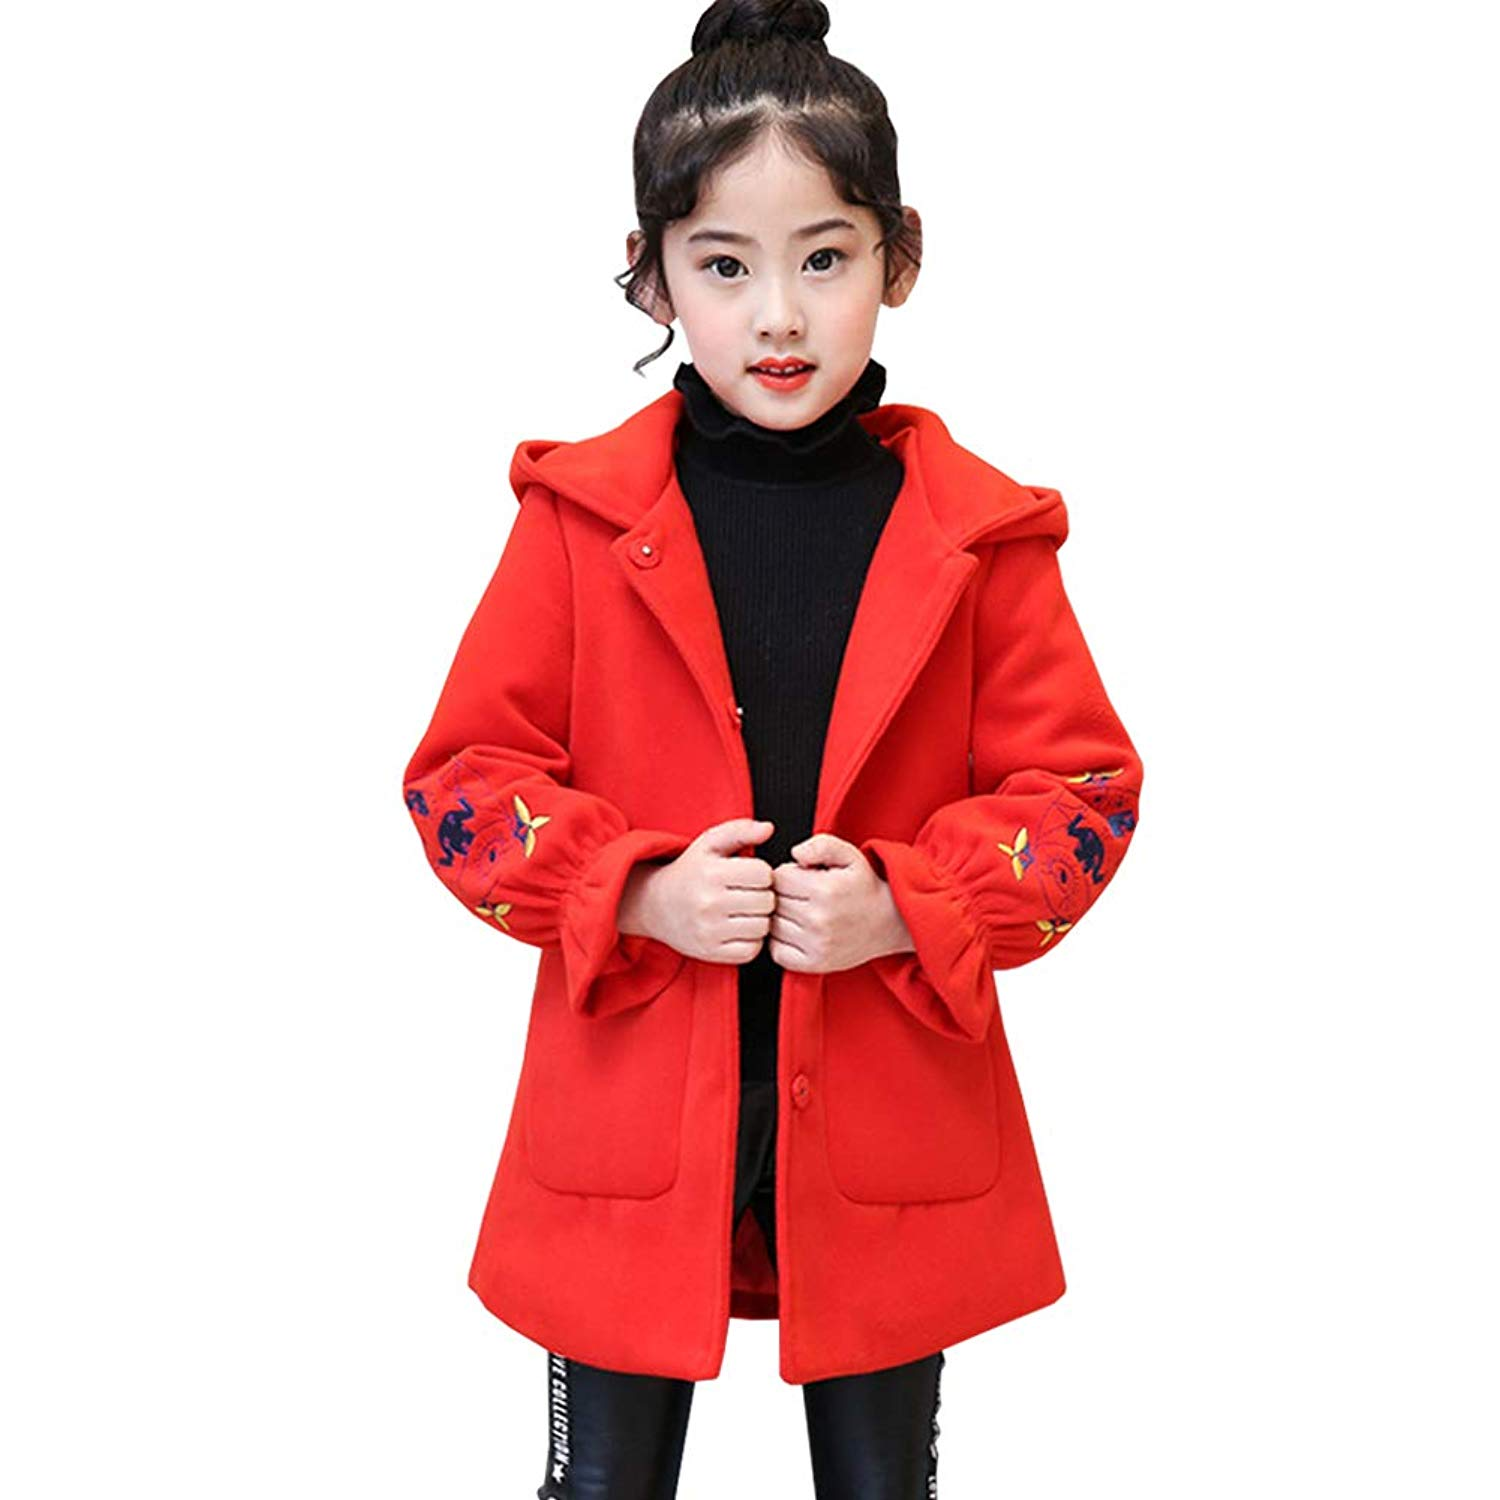 410dc86bbb693 Get Quotations · M&A Girl's Winter Thick Trench Coat with Hood Wool Blend  Long Pea Coats